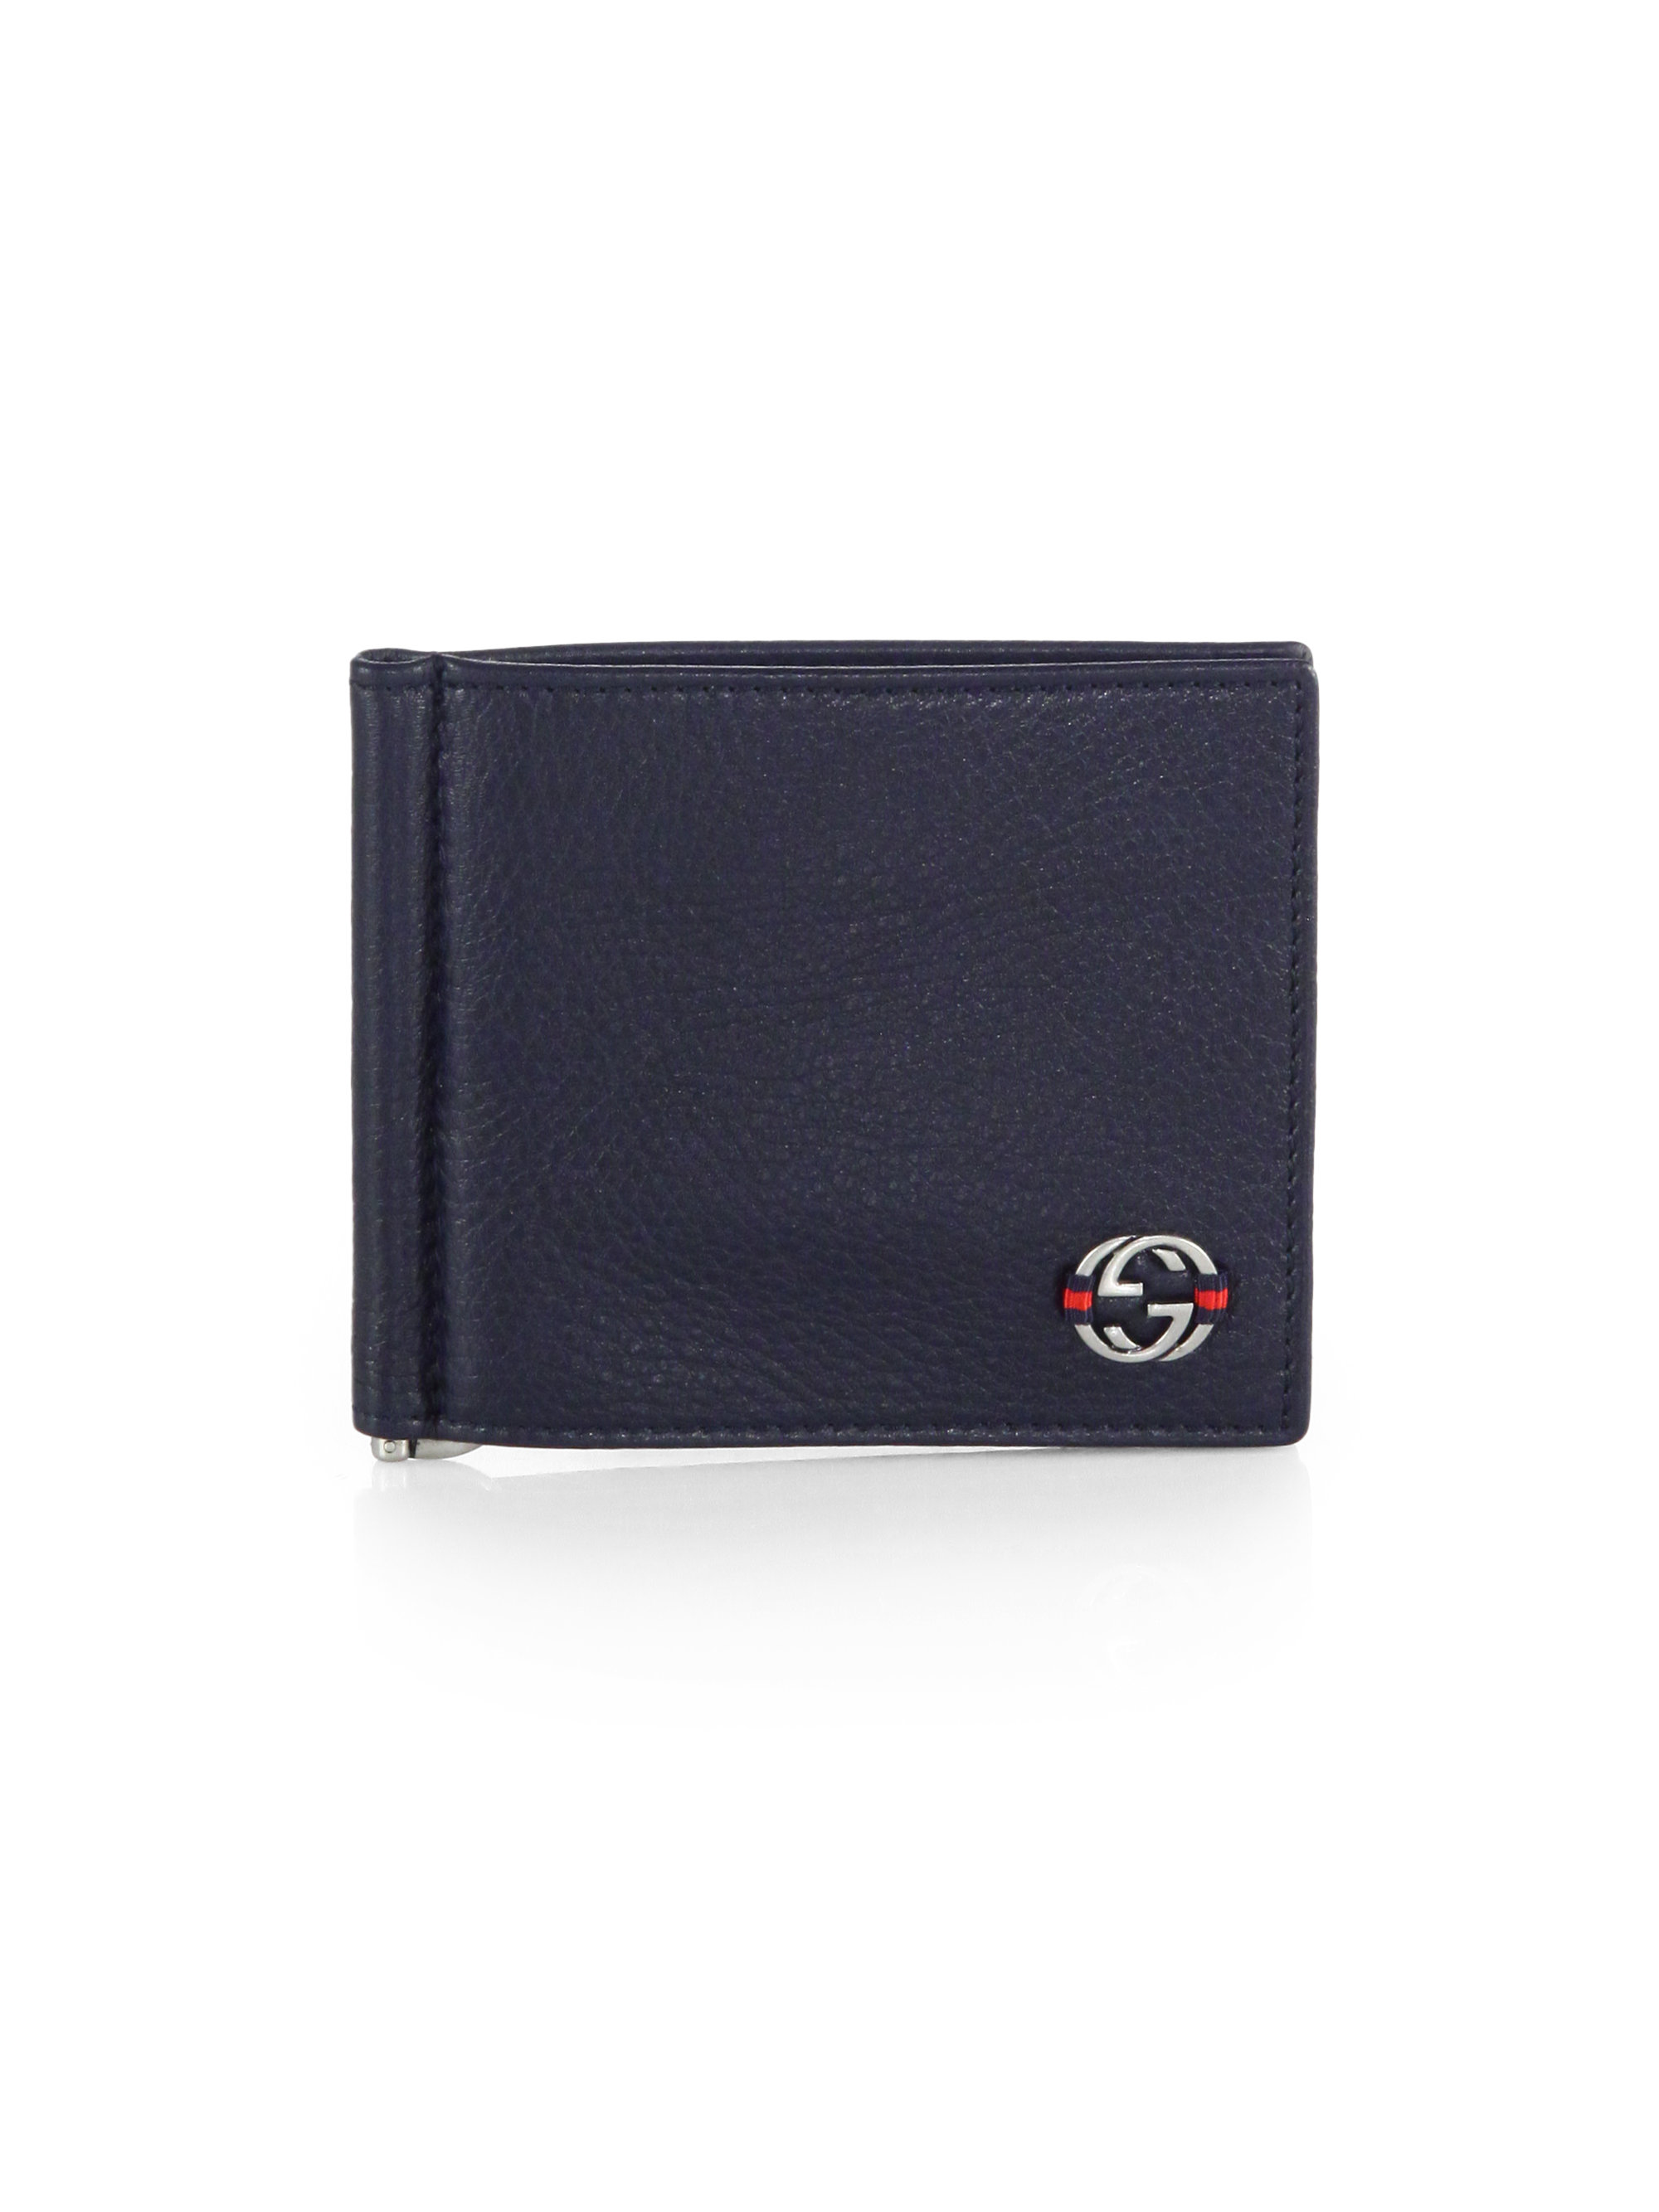 Gucci Money Clip | Gucci Wallet with Money Clip | Gucci Credit Card Holder Money Clip